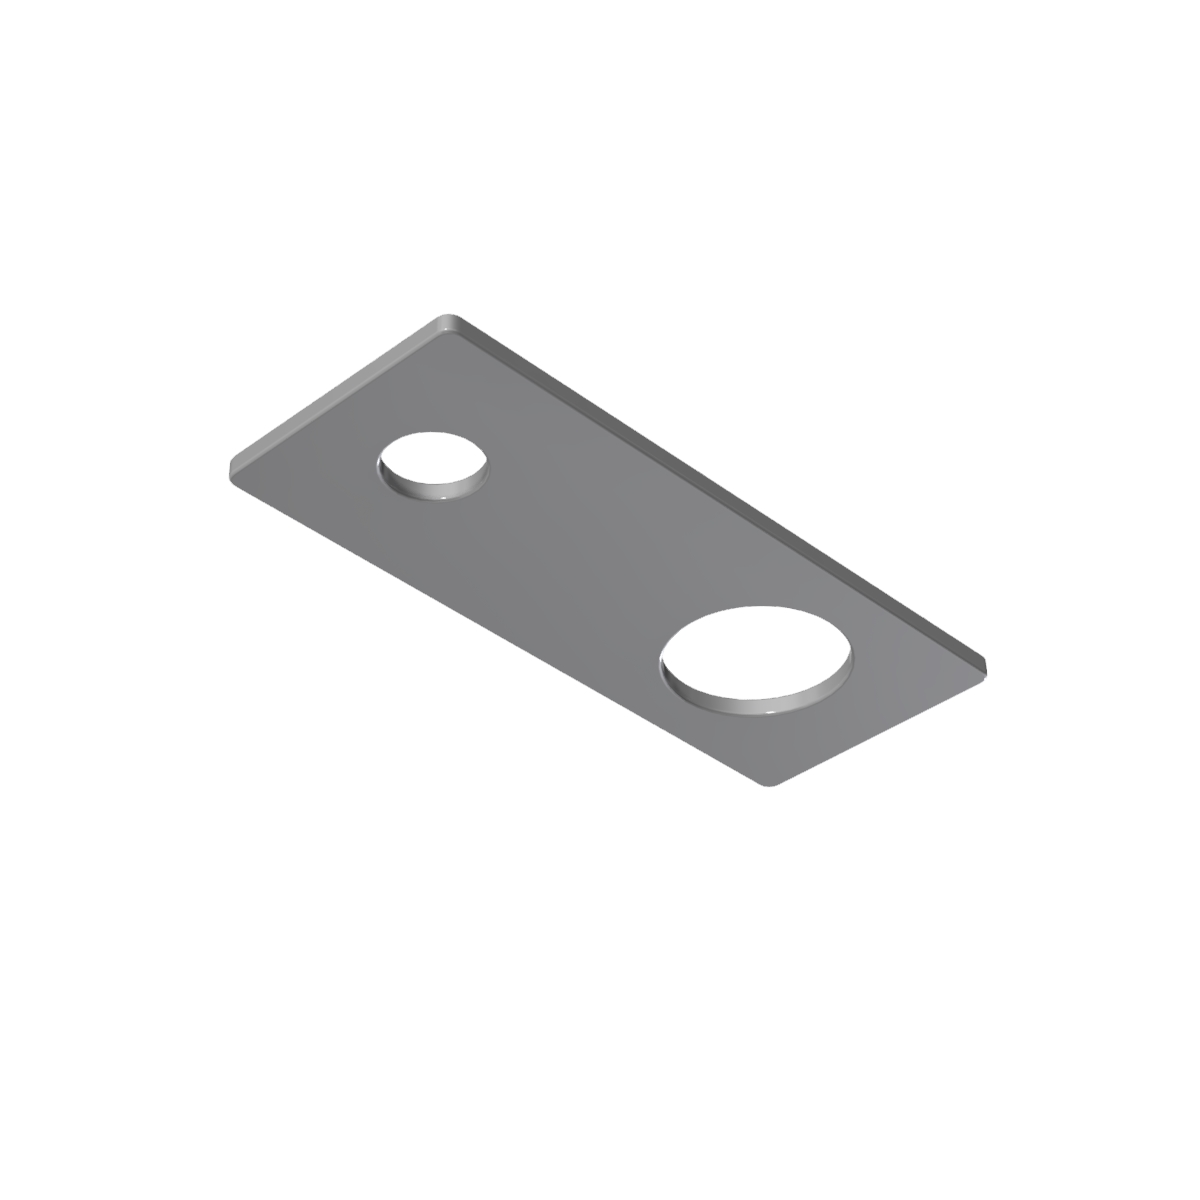 http://Product%20image%20of%20Sacrificial%20anodes%20Brackets%20and%20clamps%20/%20Produktbilde%20av%20Offeranoder%20Tilbehør%20